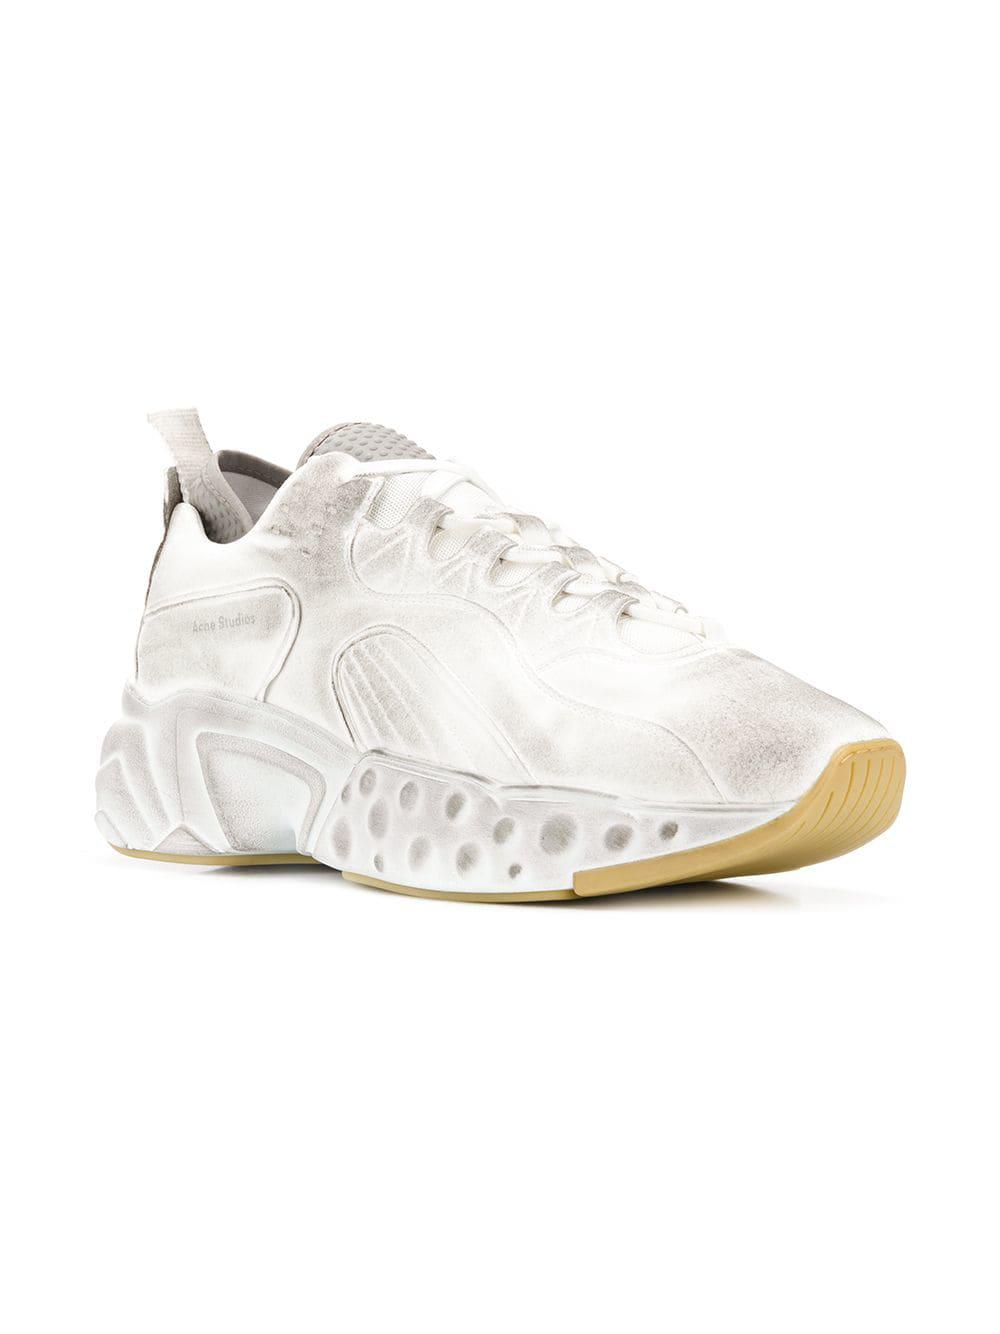 e4e7c4c19c724 Lyst - Acne Studios Rockaway Tumbled Sneakers in White for Men